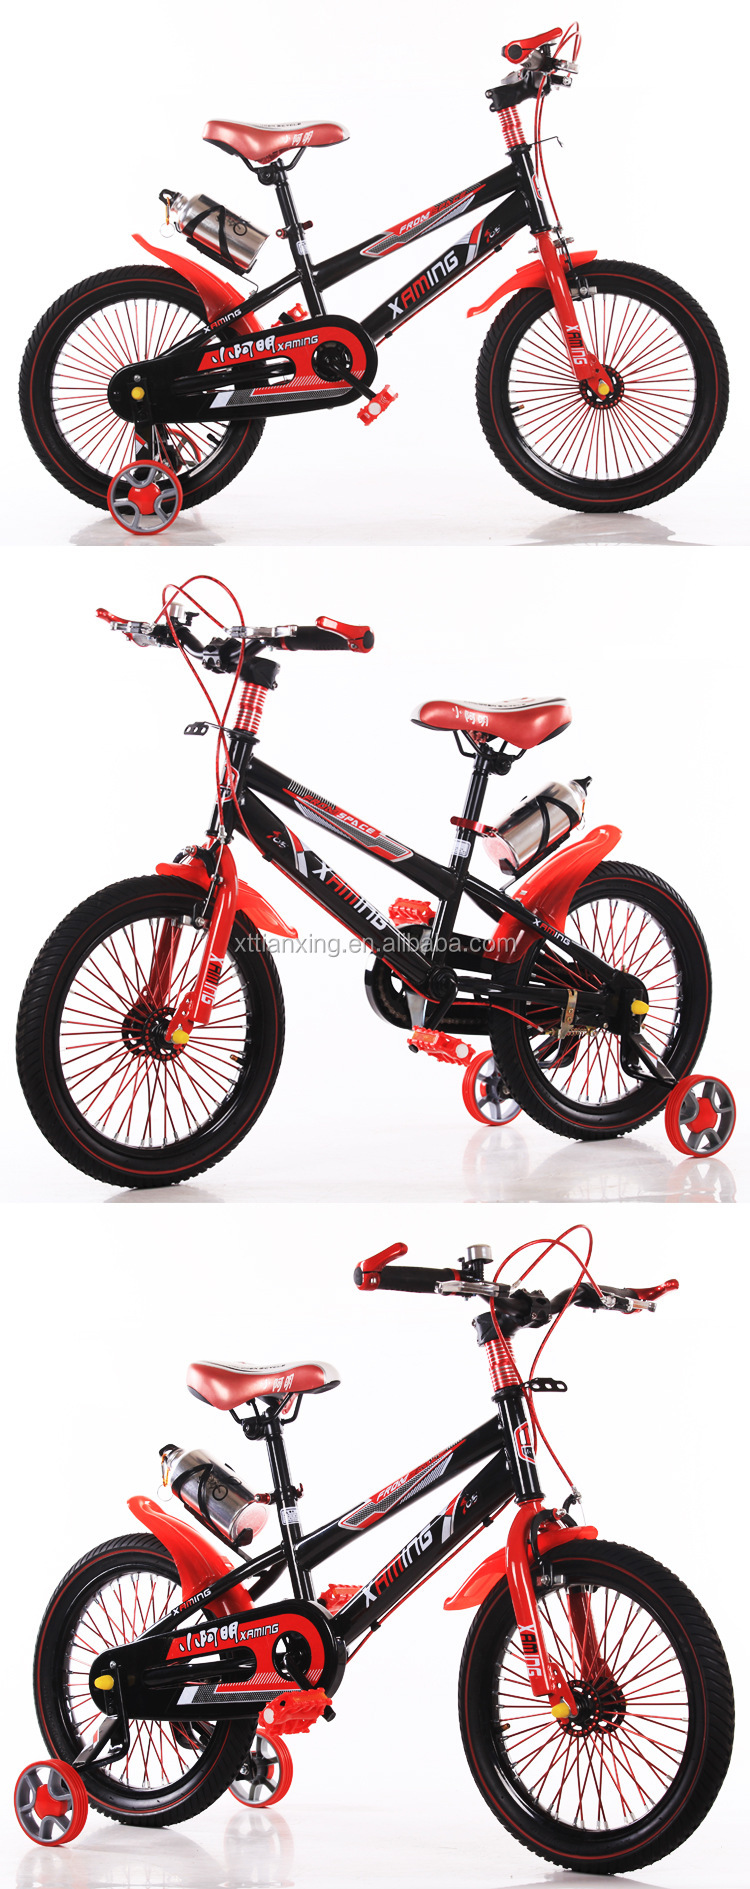 High quality child bicycle kids balancing bike made in China/ kid bicycle for 3 5 years old children /kid bike